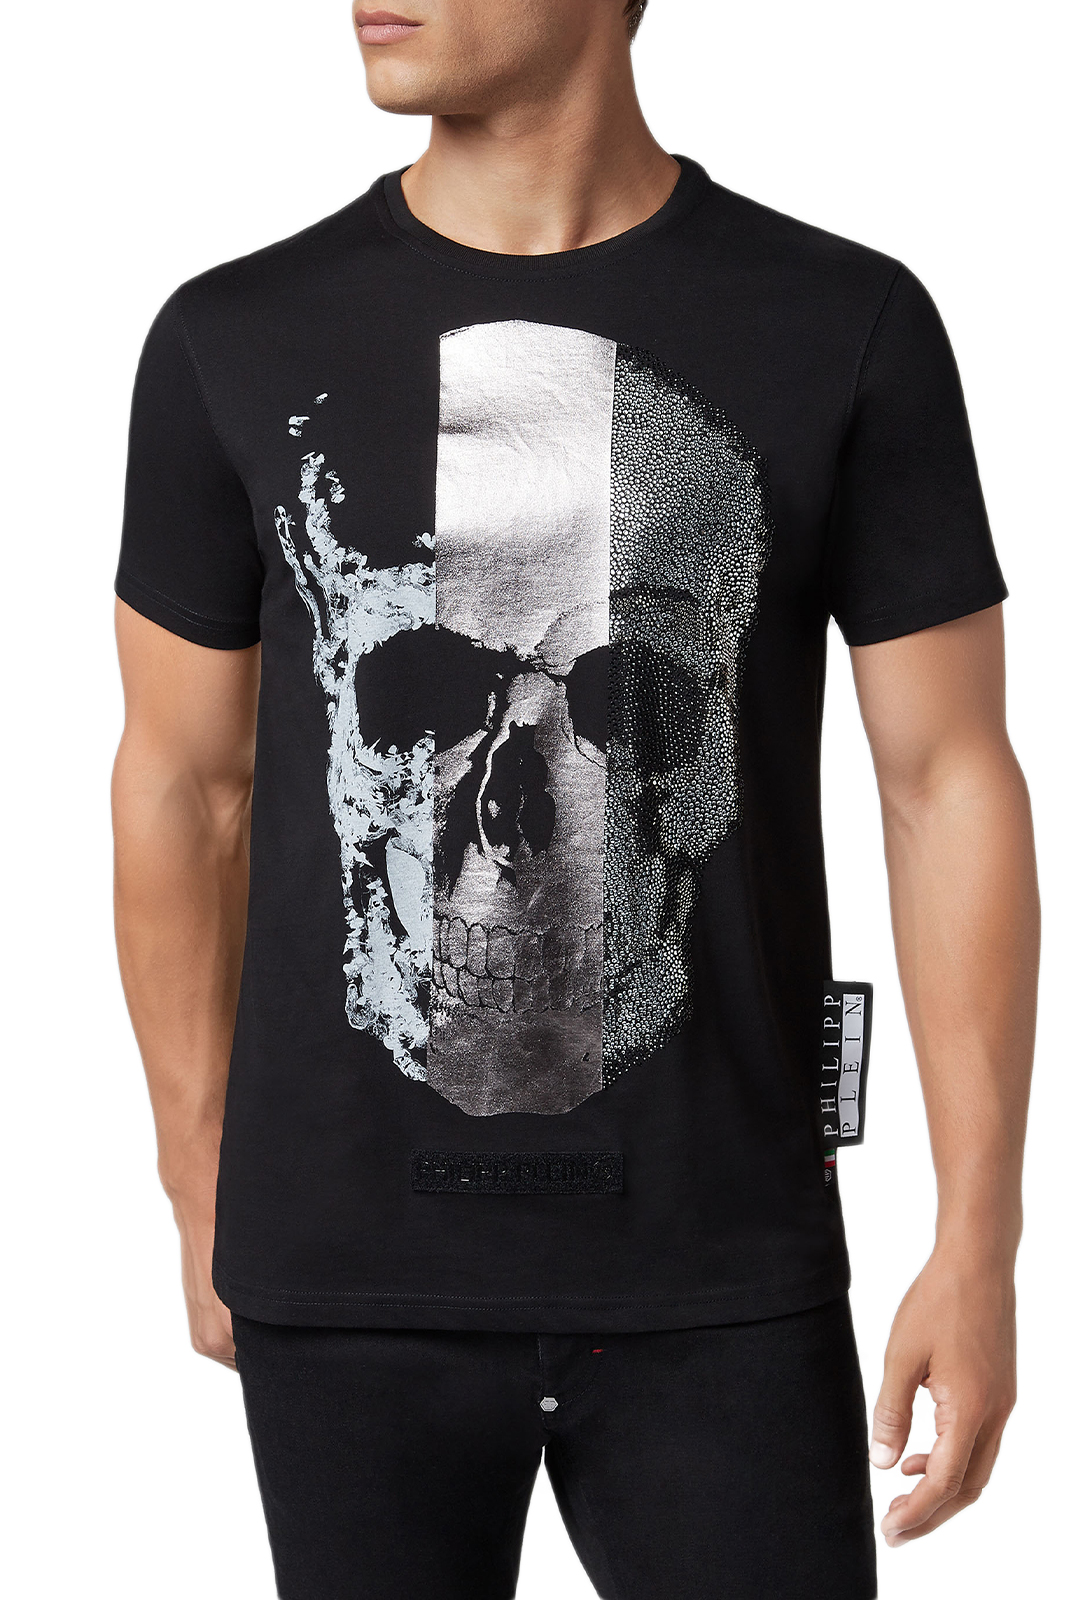 Tee-shirts  Philipp plein MTK3094 Platinum Cut Round Neck Skull BLACK